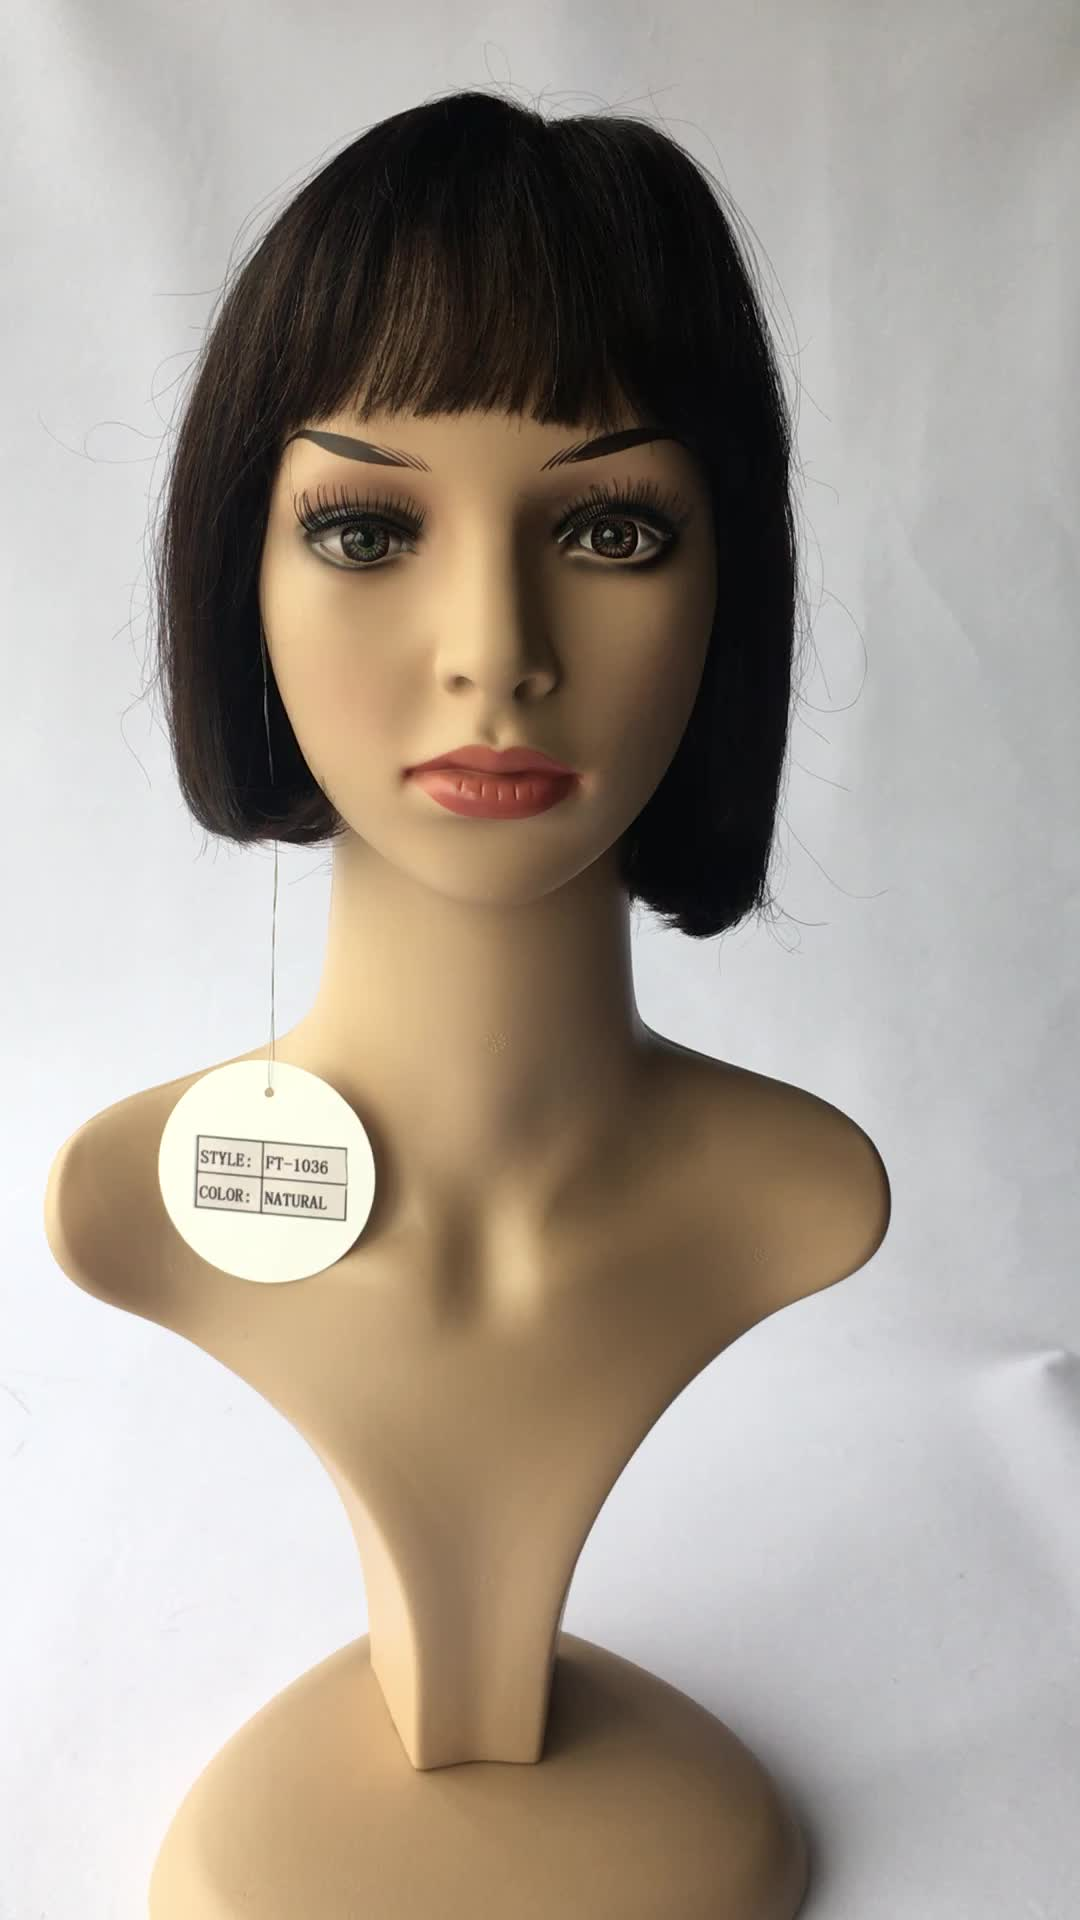 Human Hair Wig Wholesale, Hair Wigs Suppliers - Alibaba